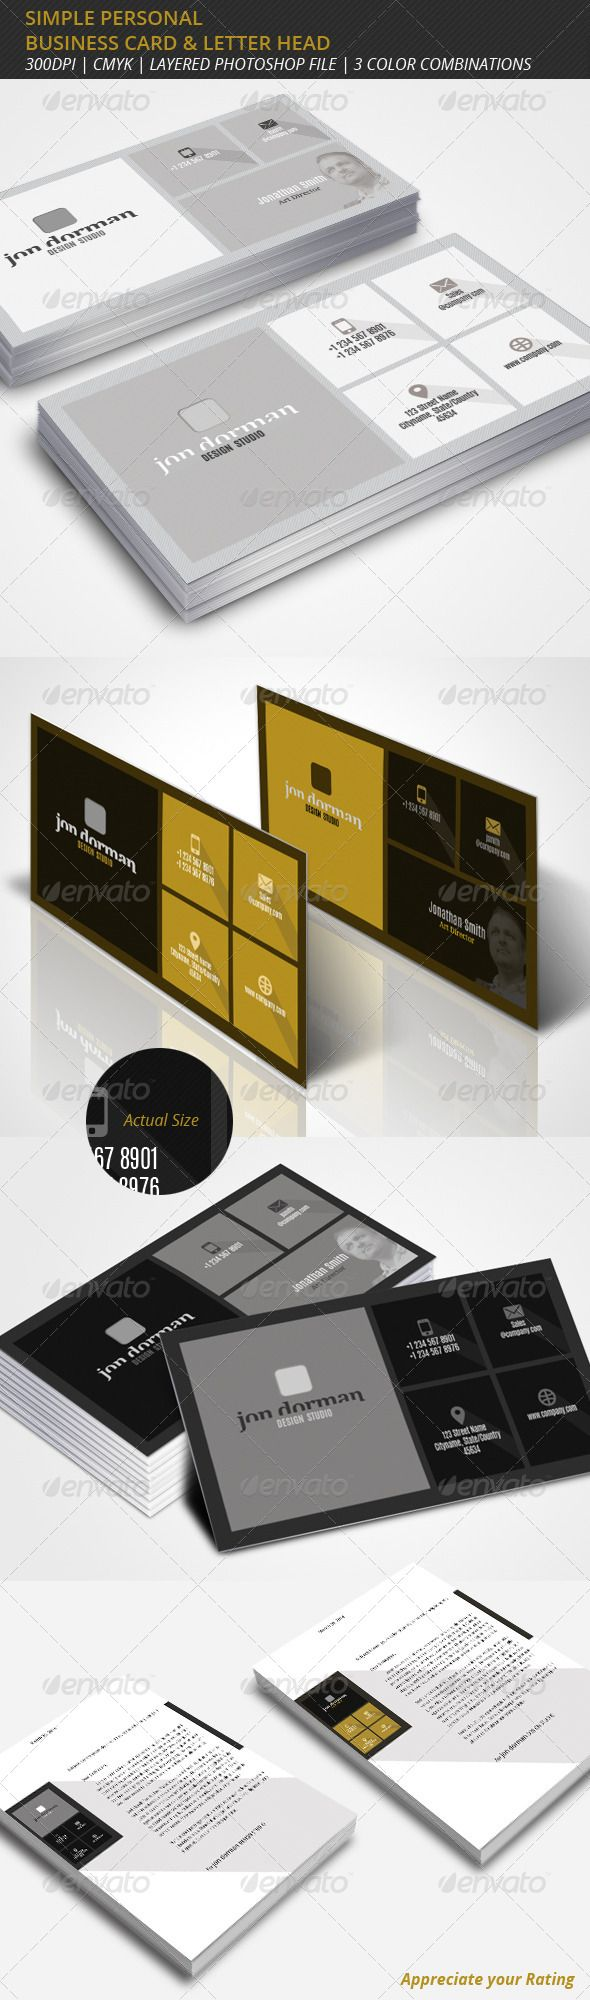 The 25 best professional business cards ideas on pinterest simple professional business card letterhead magicingreecefo Images